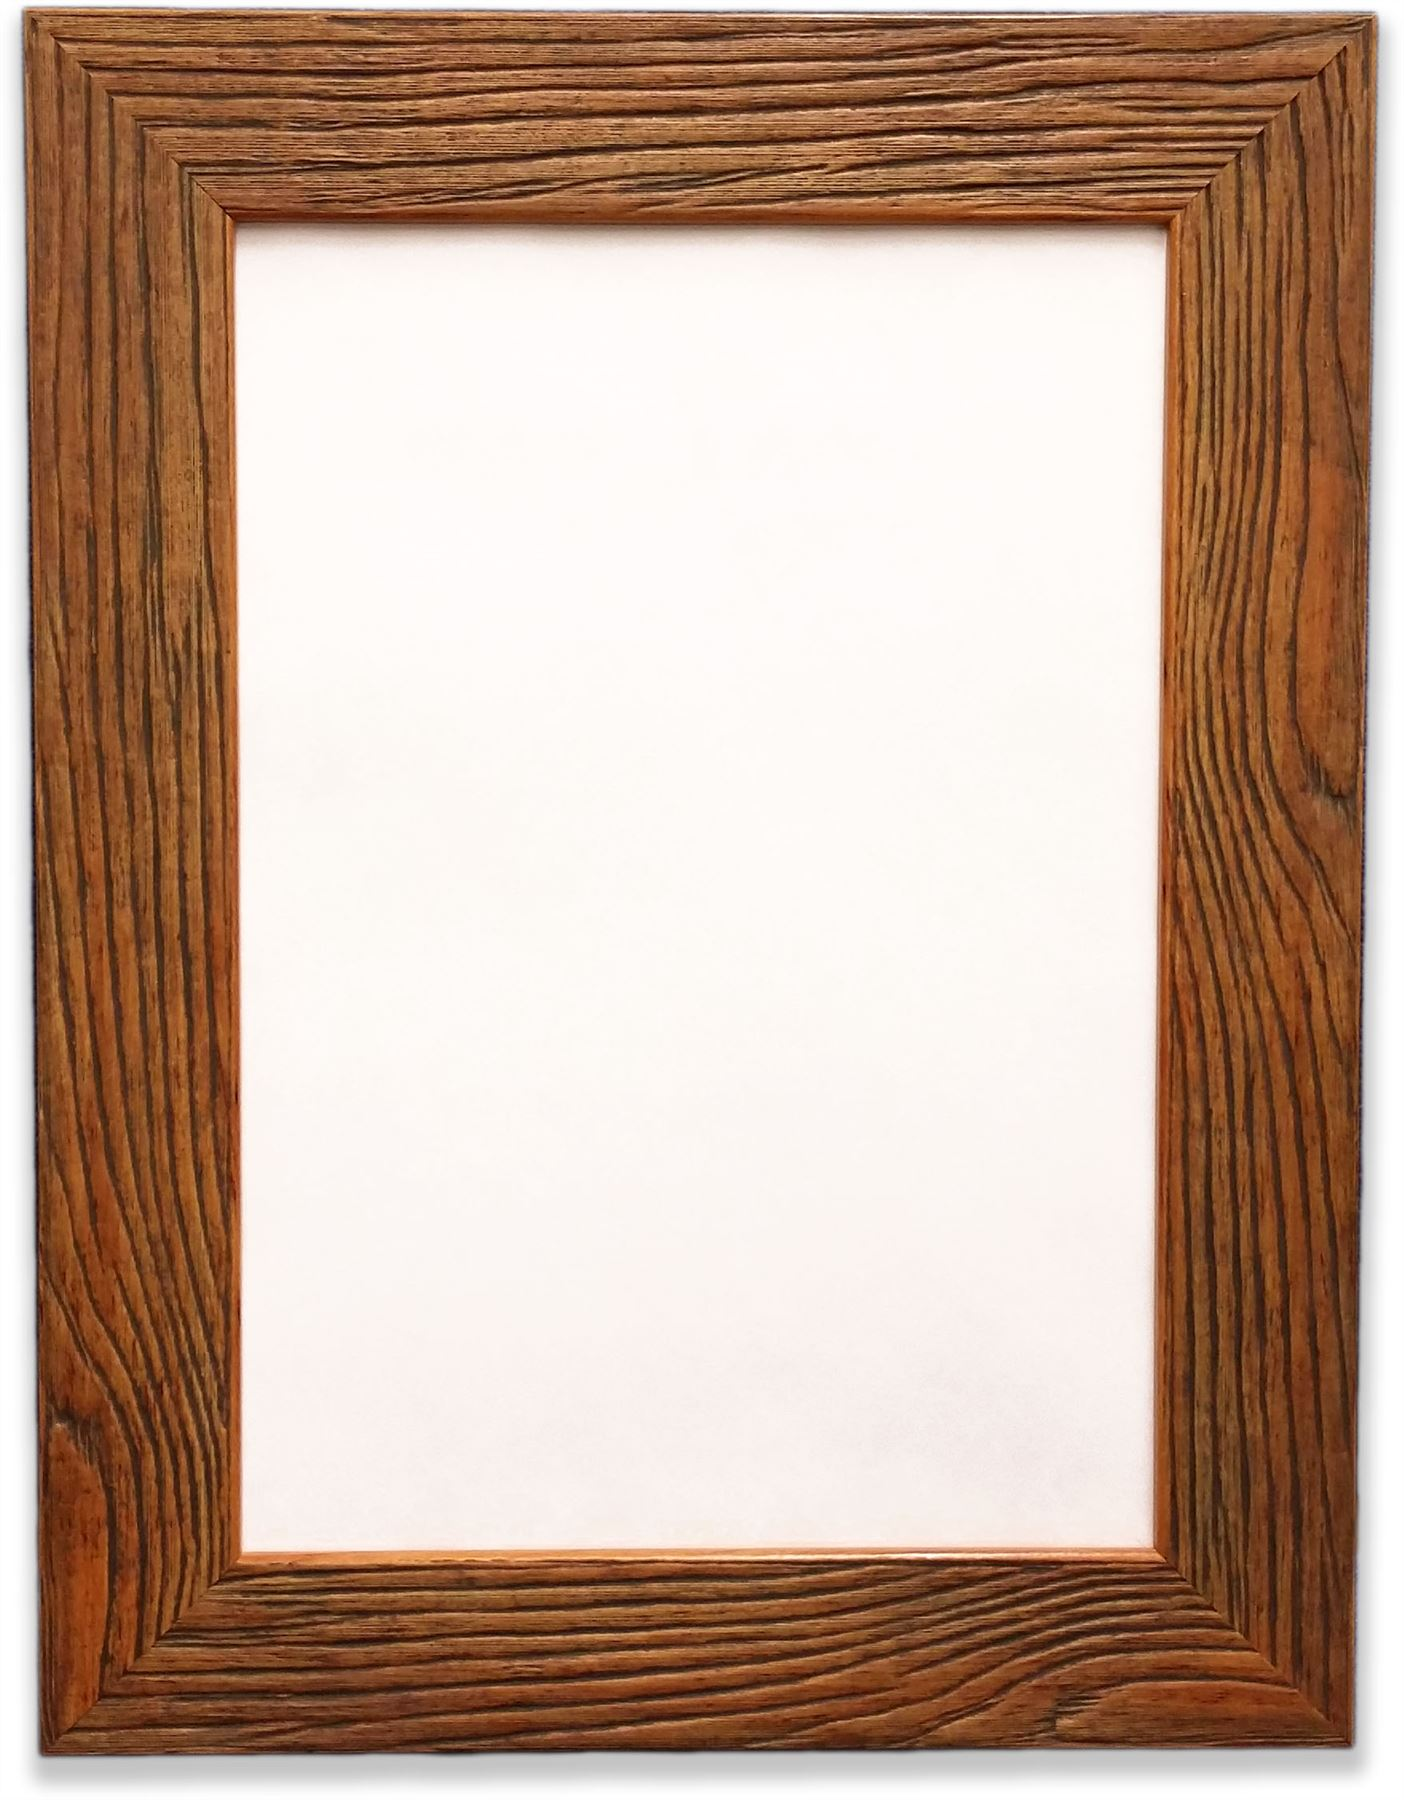 Dark Rustic Wood Grain Finish Photo Picture Frame 43mm